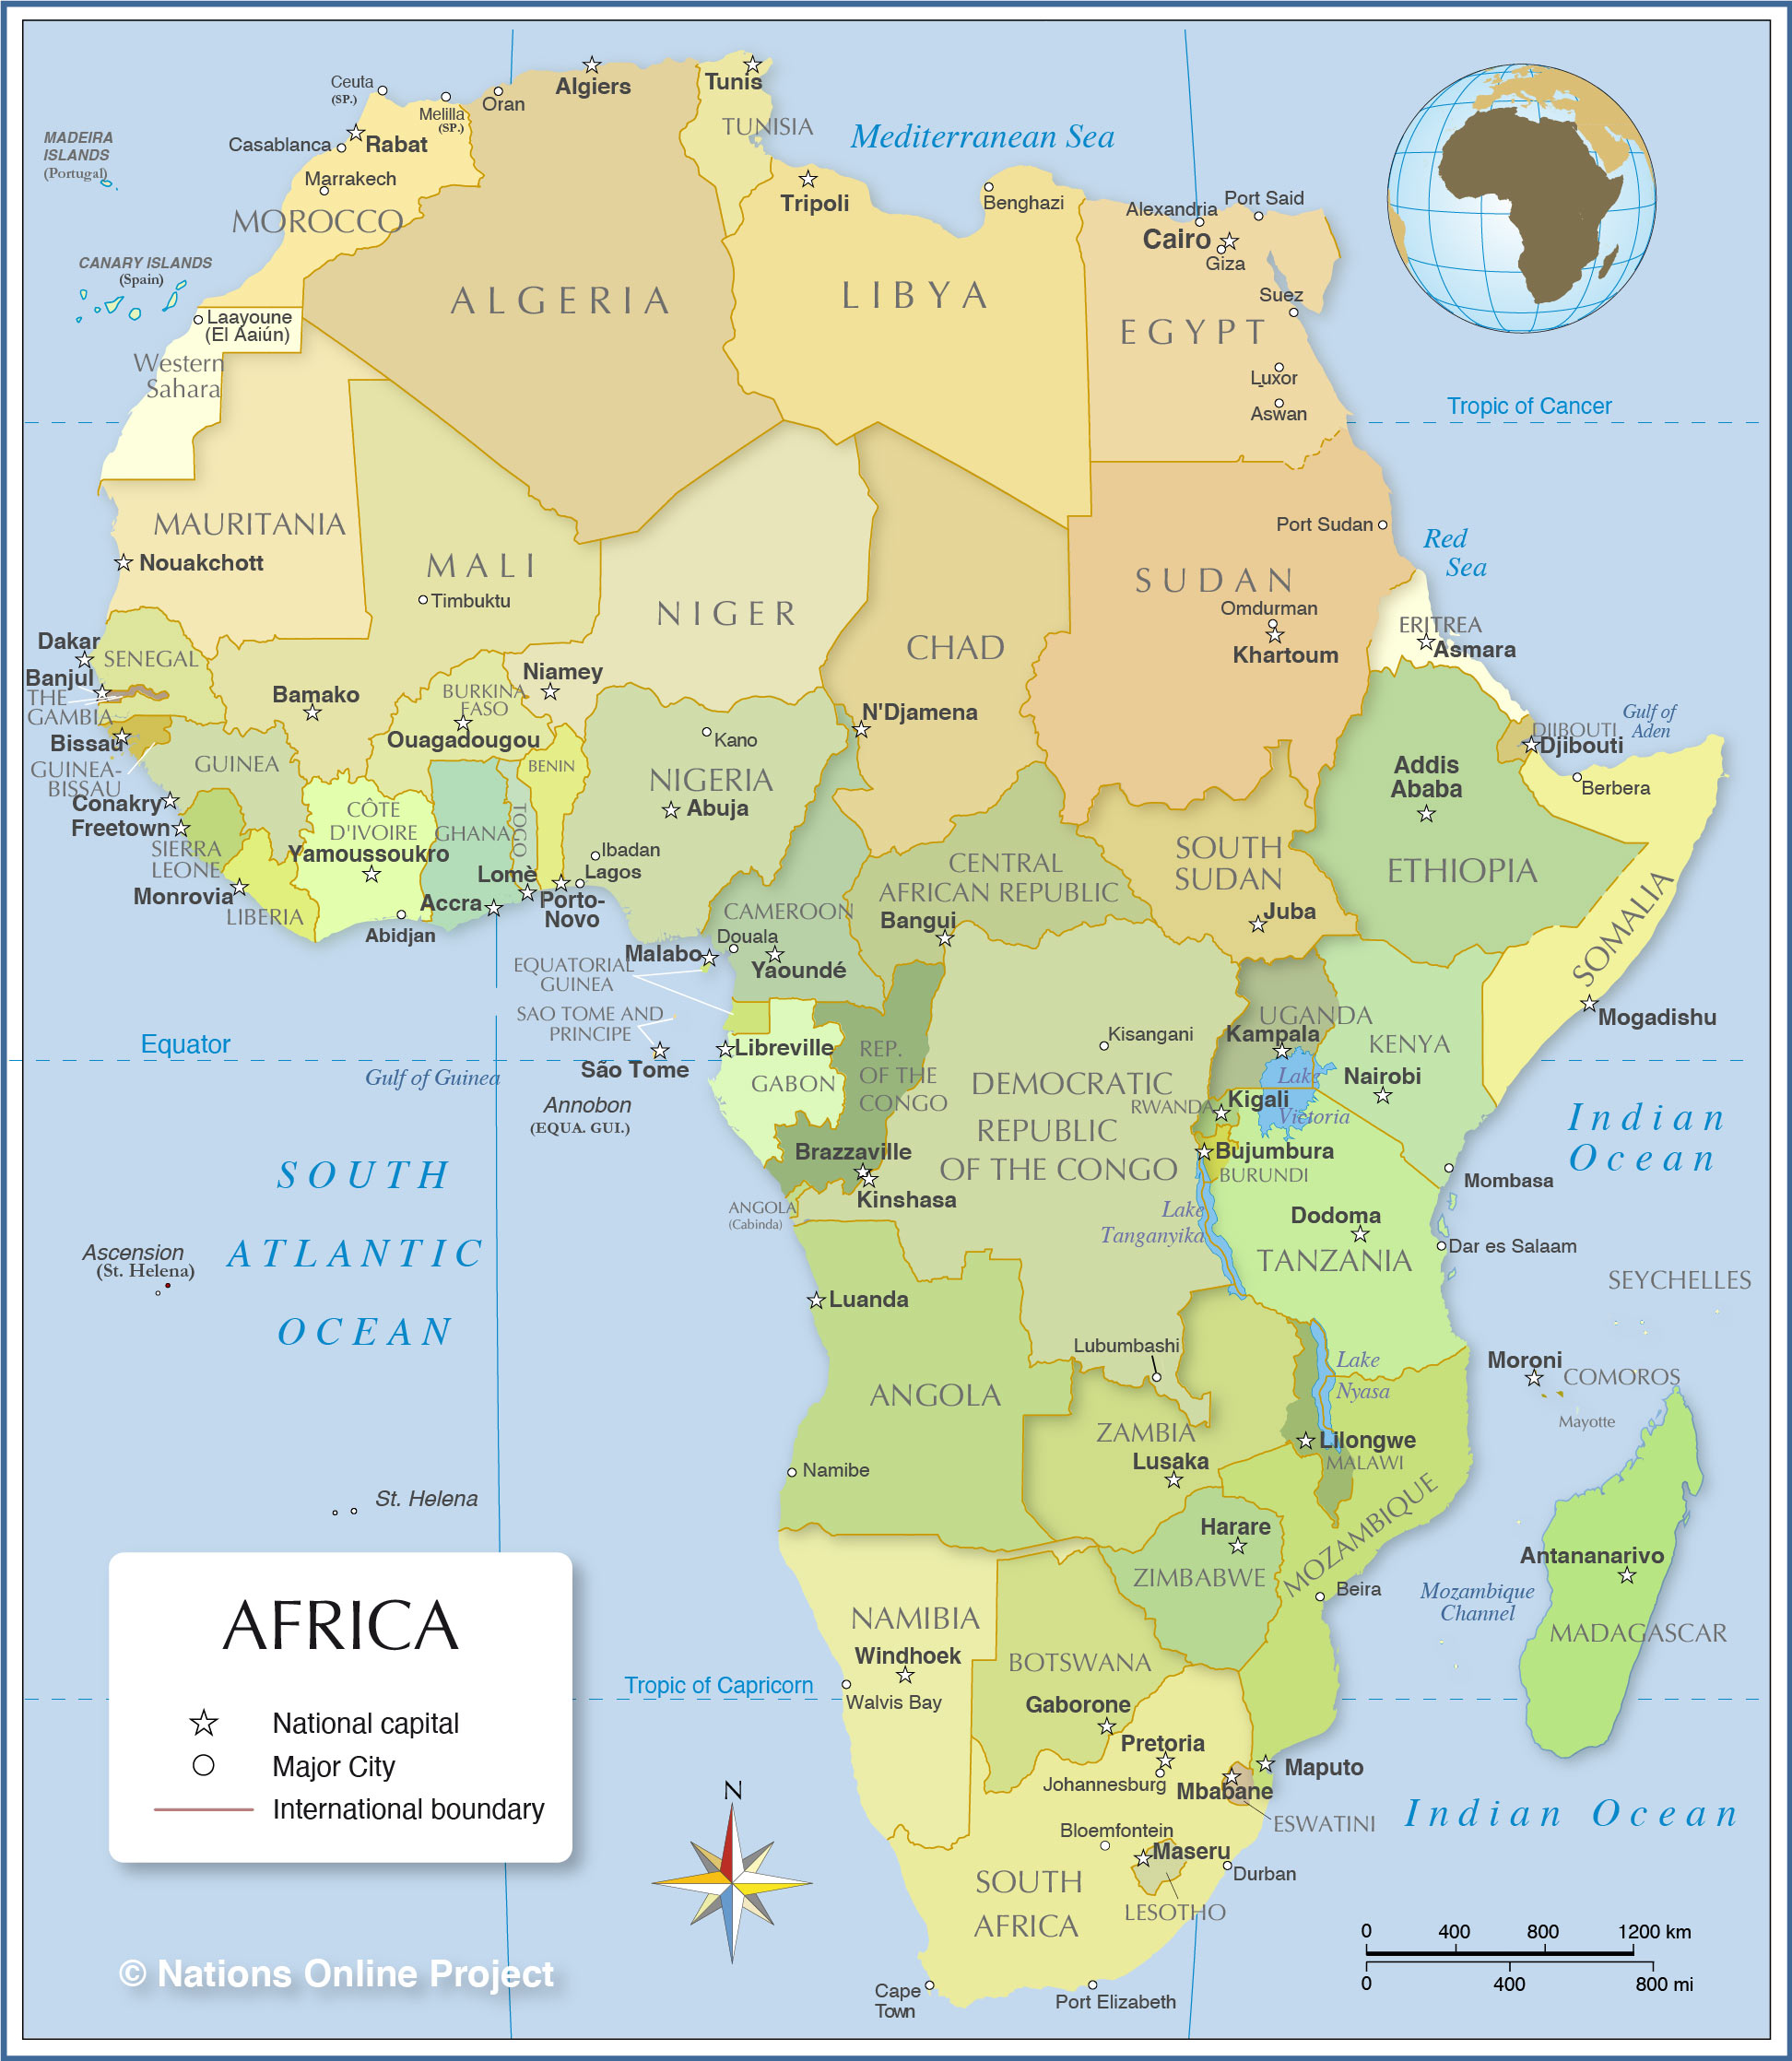 map of present day africa Political Map Of Africa Nations Online Project map of present day africa